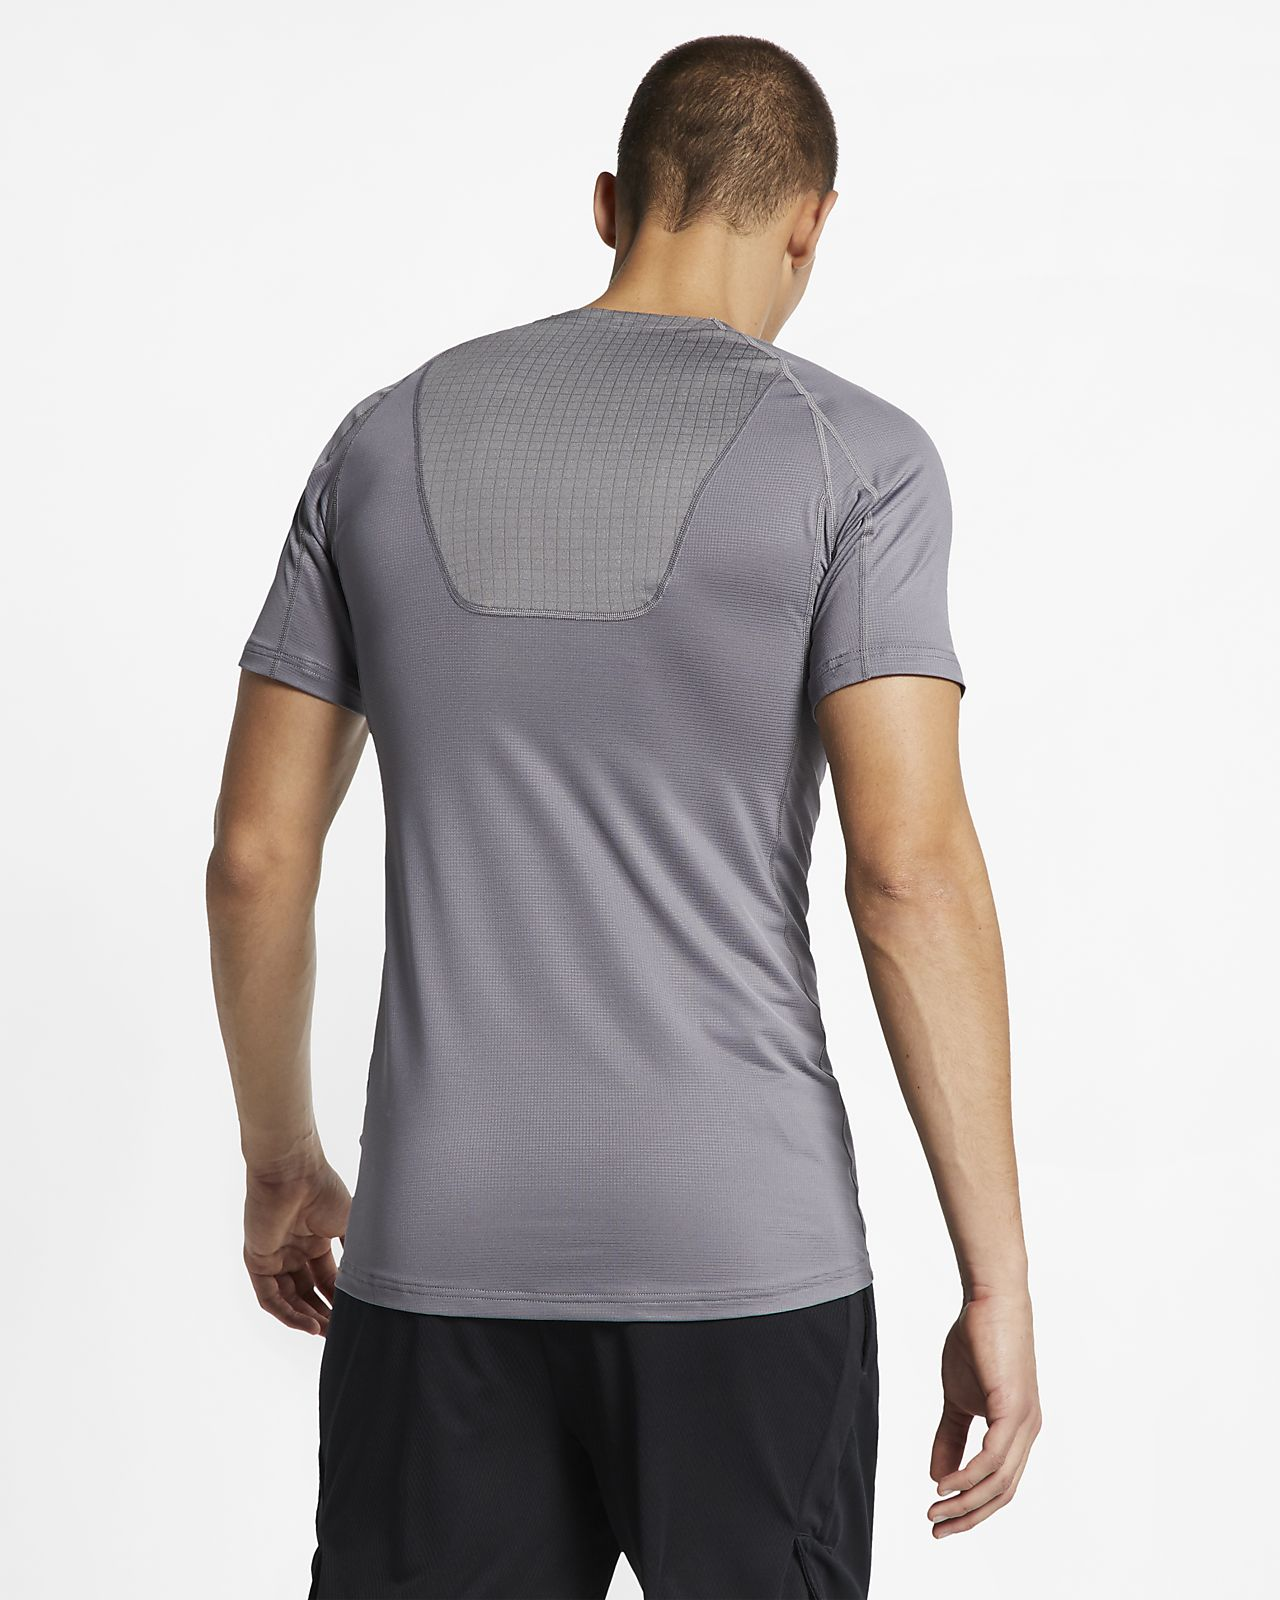 a72c822c6e Nike Breathe Pro Men's Short-Sleeve Top